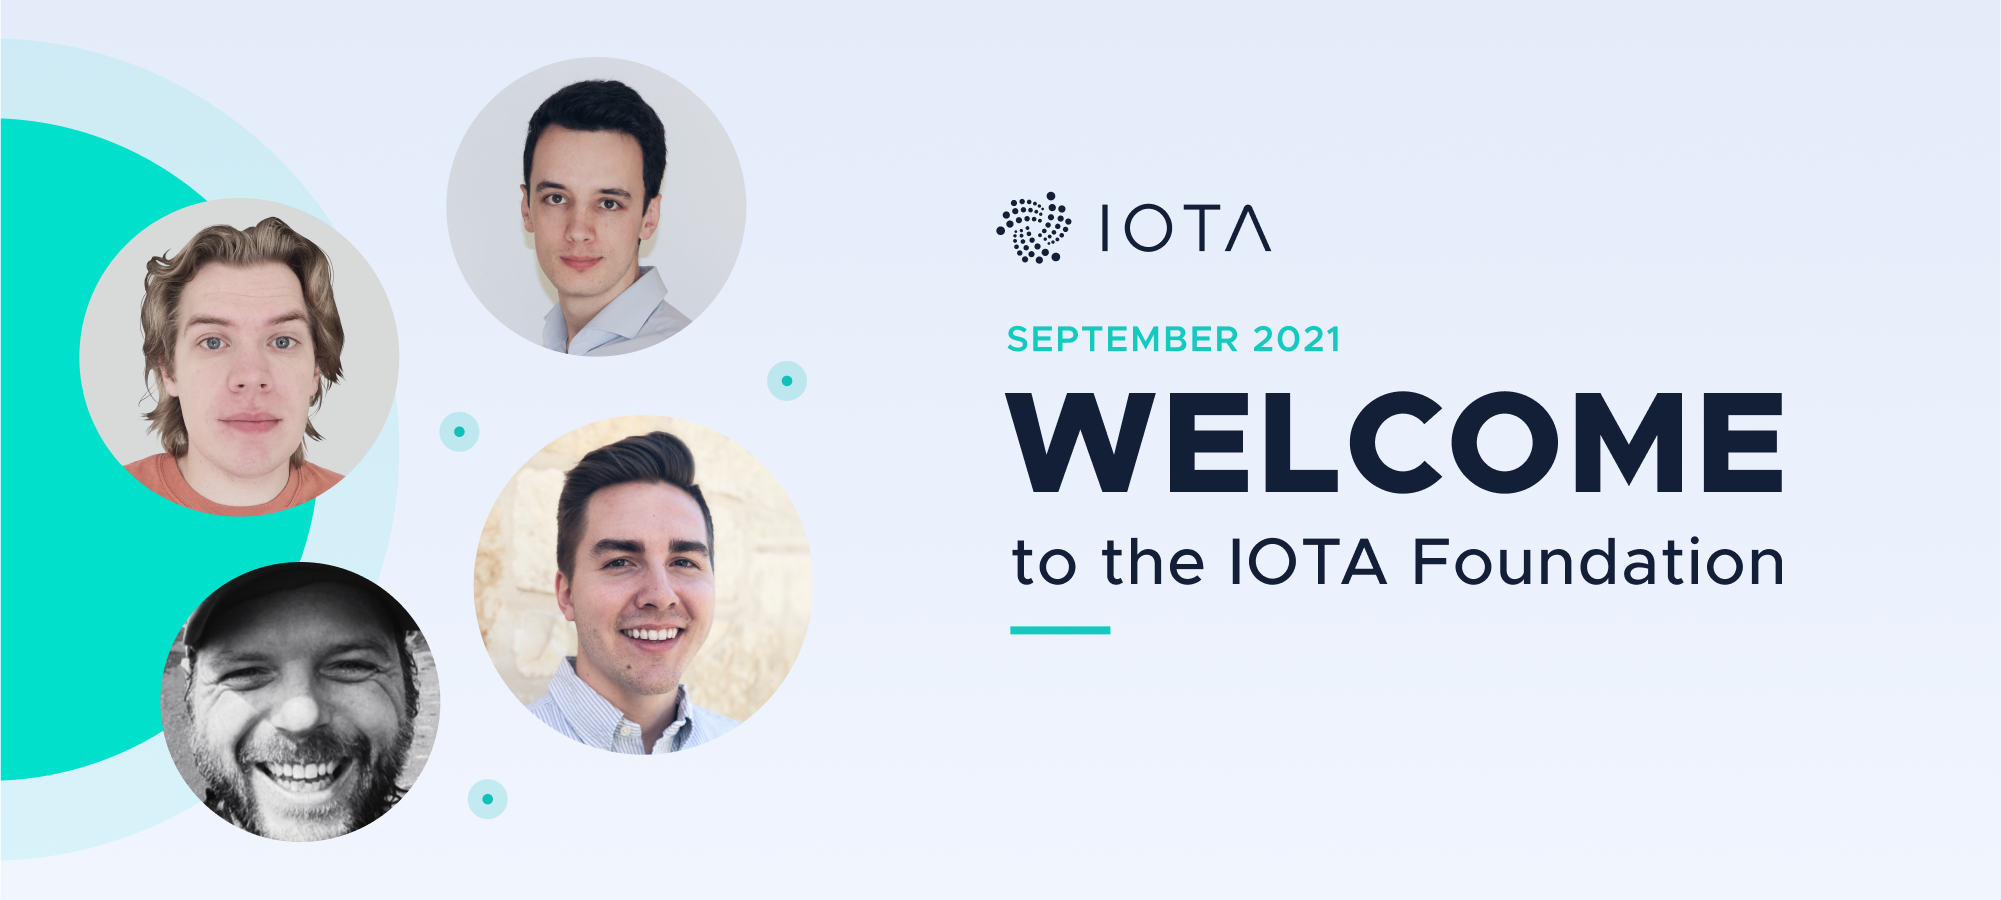 Welcome Aleksei Korolev, Holger (Phylo), Matthew Maxwell, and Philipp Gackstatter to the IOTA Foundation